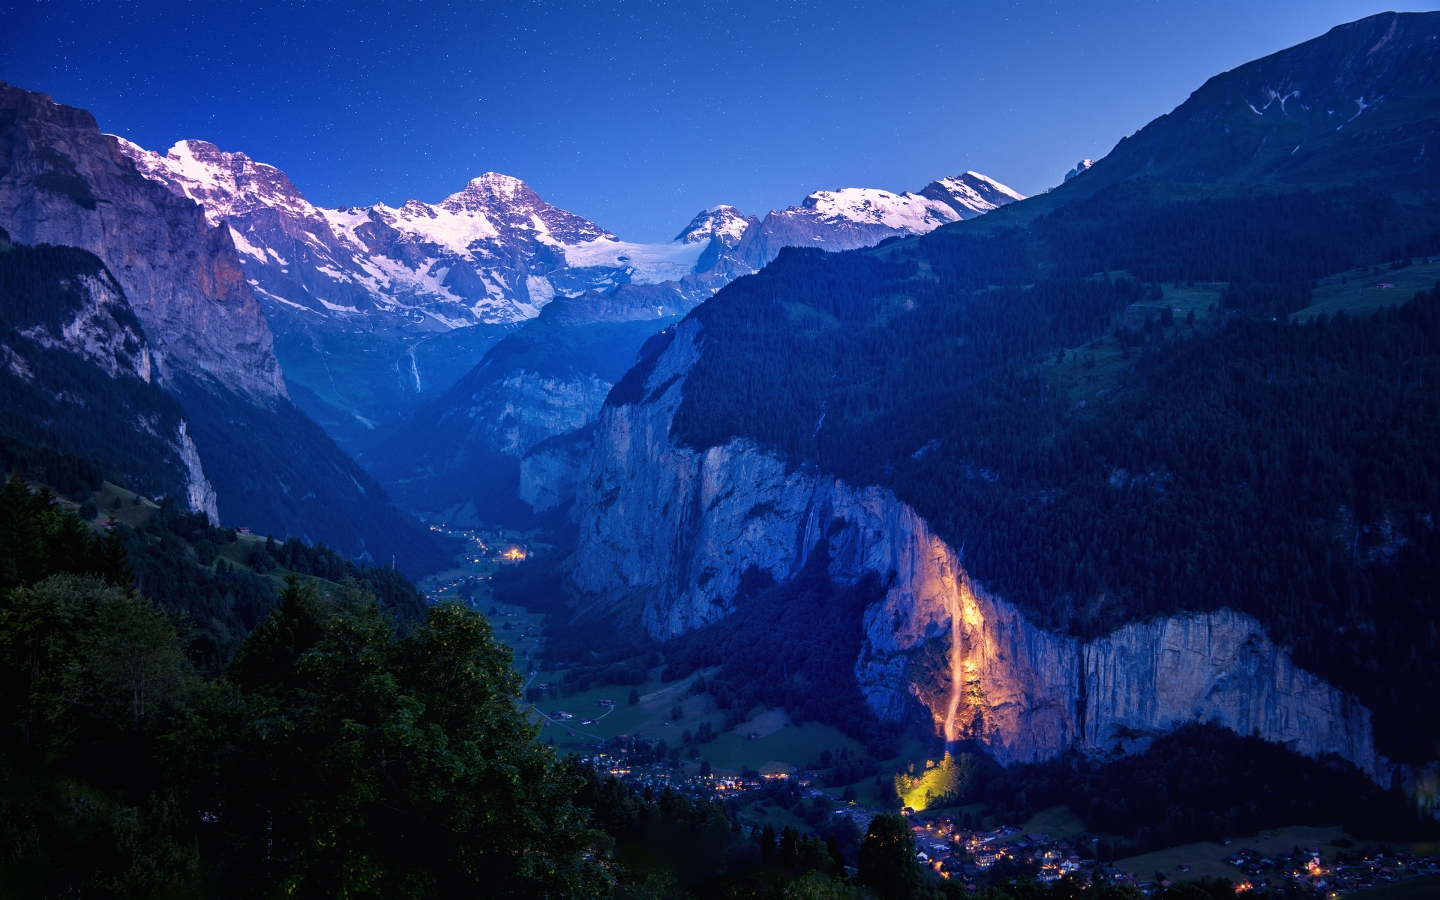 Lauterbrunnen Valley for 1440 x 900 widescreen resolution